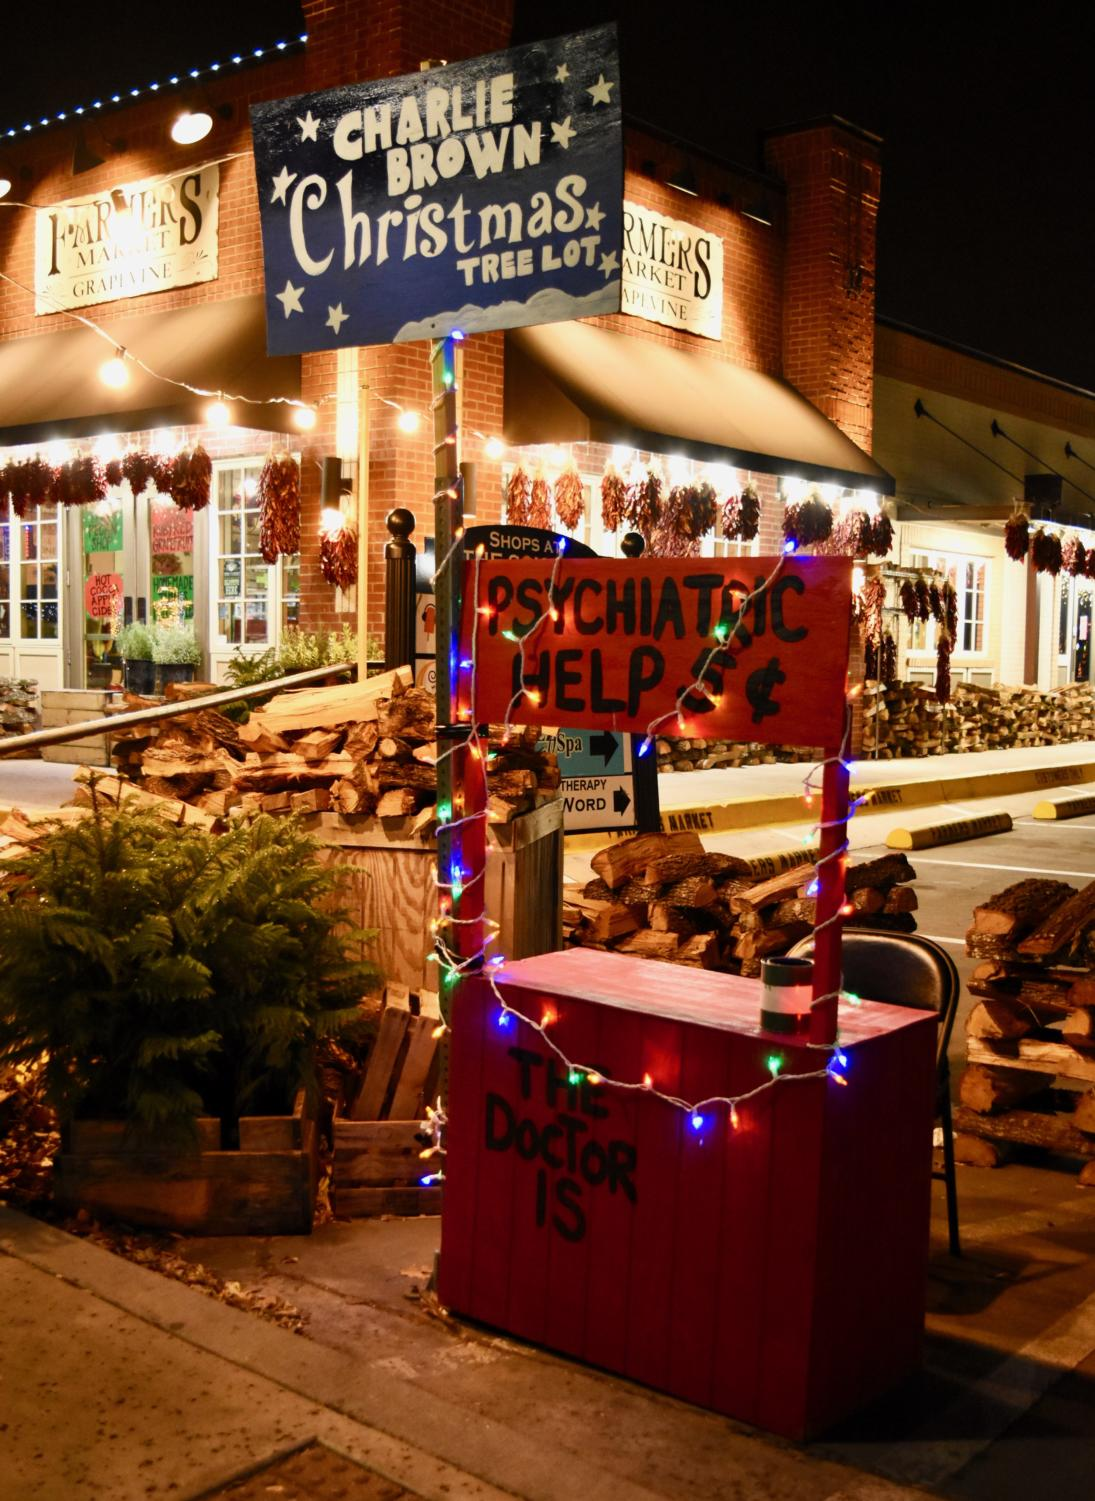 Grapevine+store+owners+have+put+effort+into+making+Main+Street+fun+and+festive+with+the+iconic+Charlie+Brown+Christmas+psychiatric+help+booth+for+visitors+to+take+photos+in.+Grapevine+is+known+for+its+name+%E2%80%9CThe+Christmas+Capital+of+Texas%E2%80%9D+for+their+annual+decorations%2C+parade%2C+and+the+North+Pole+Express+train.